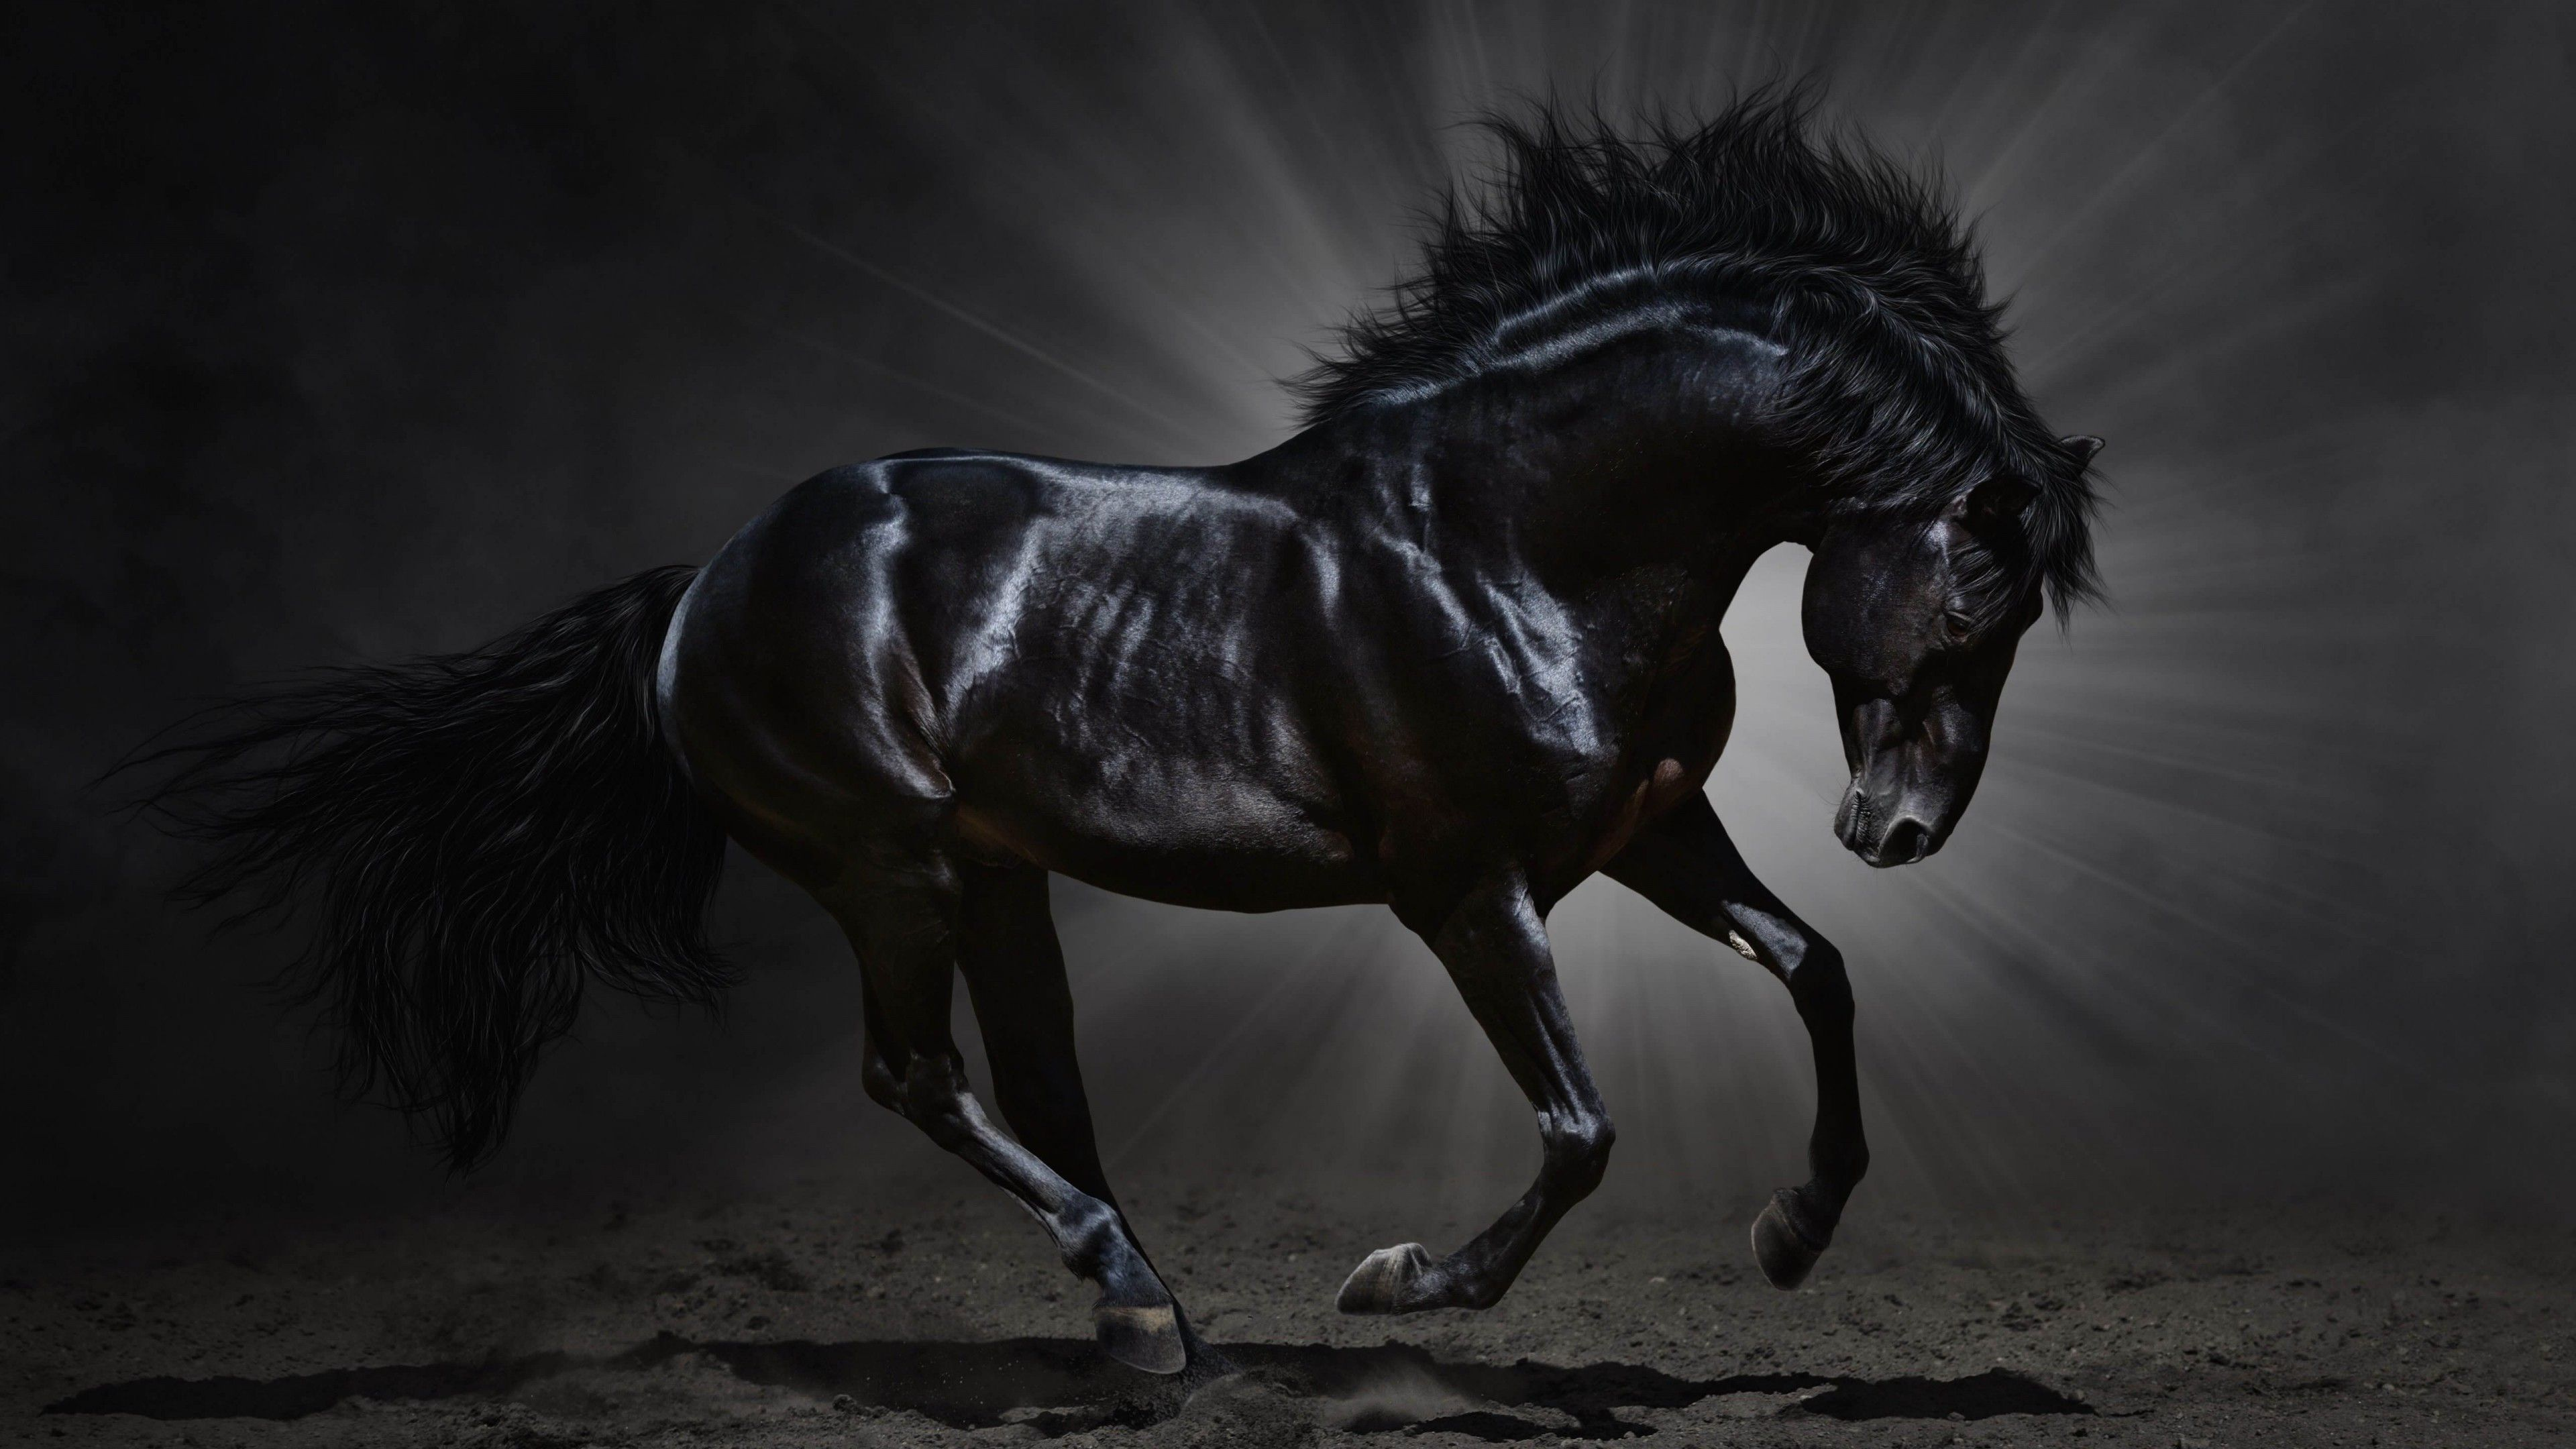 Black Horse Desktop Wallpaper Download Dark Horse Hd Wallpaper For 4k 3840 X 2160 Hdwallpapers Net Horse Wallpaper Horses Beautiful Horses